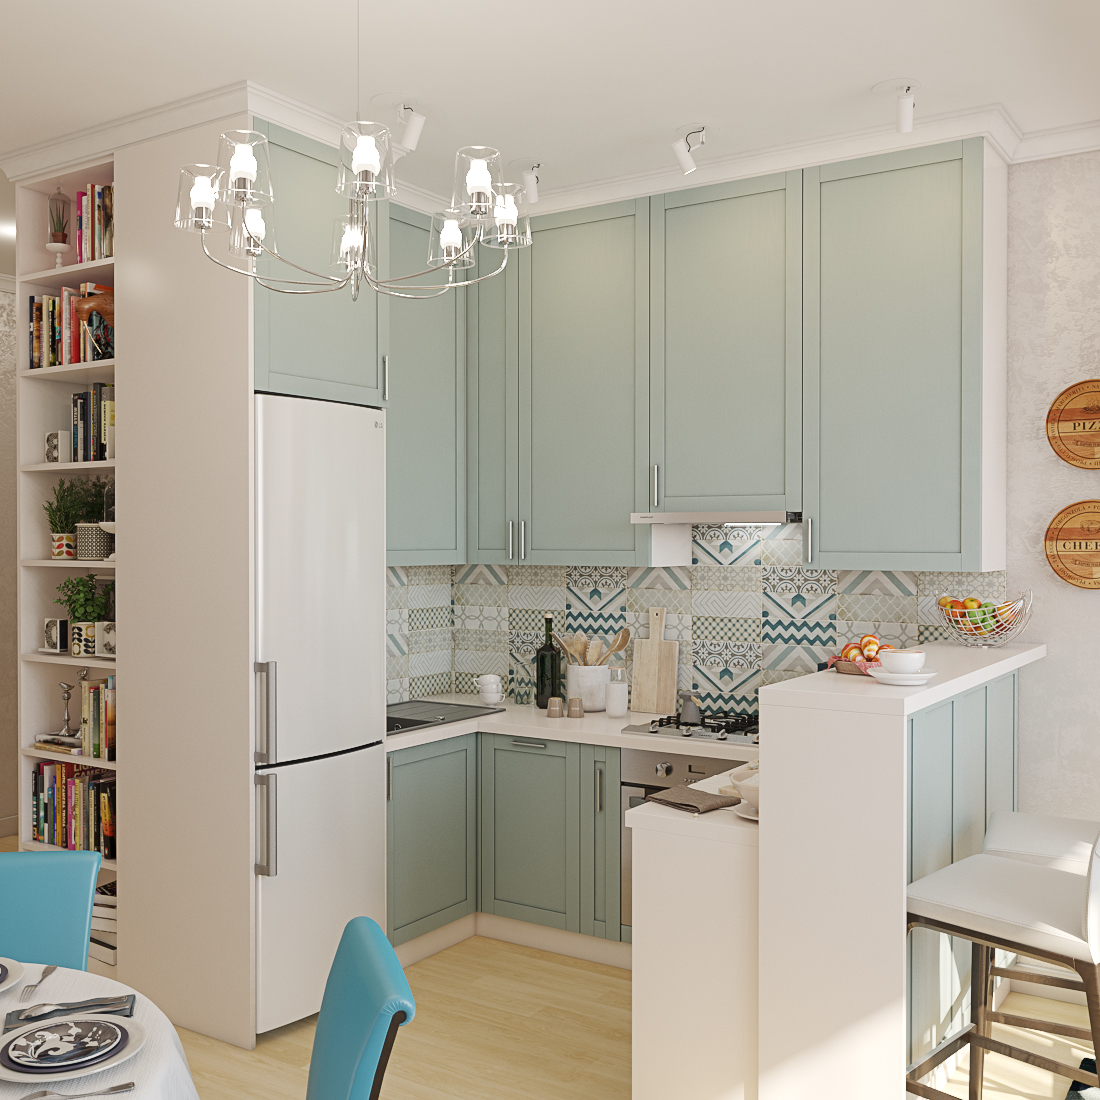 Design of a kitchen in 3d max vray 3.0 image